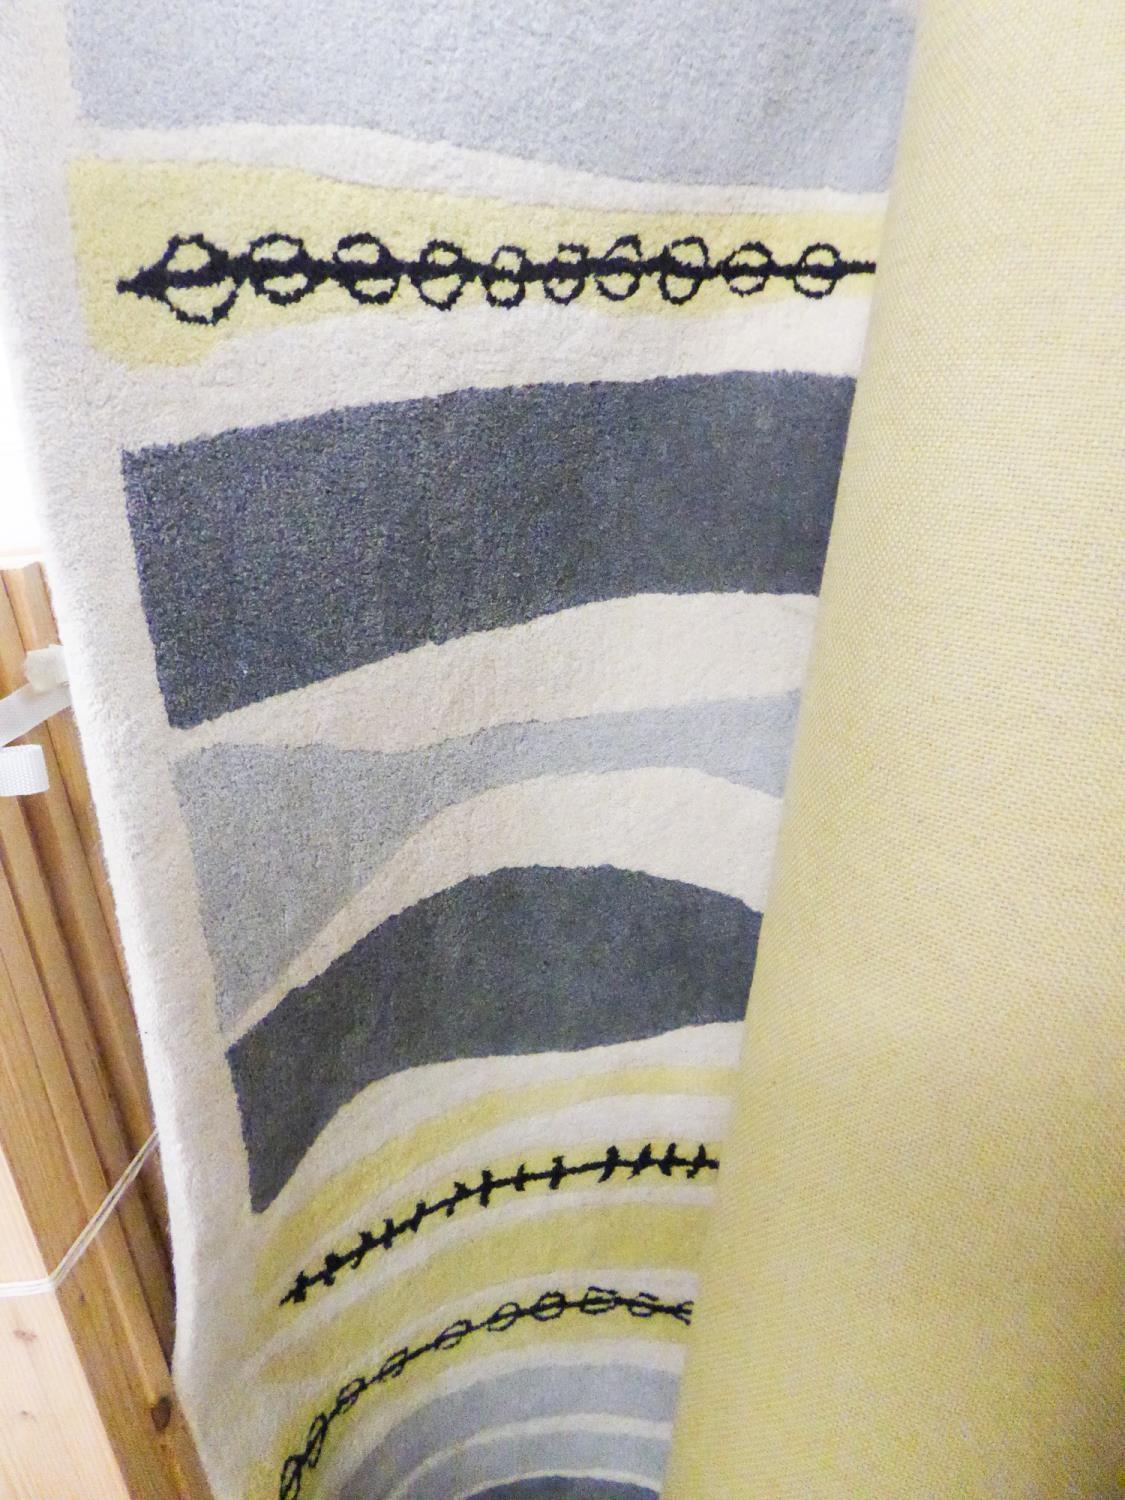 LARGE ABSTRACT DESIGN RUG, 240CM X 170CM BY JOHN LEWIS